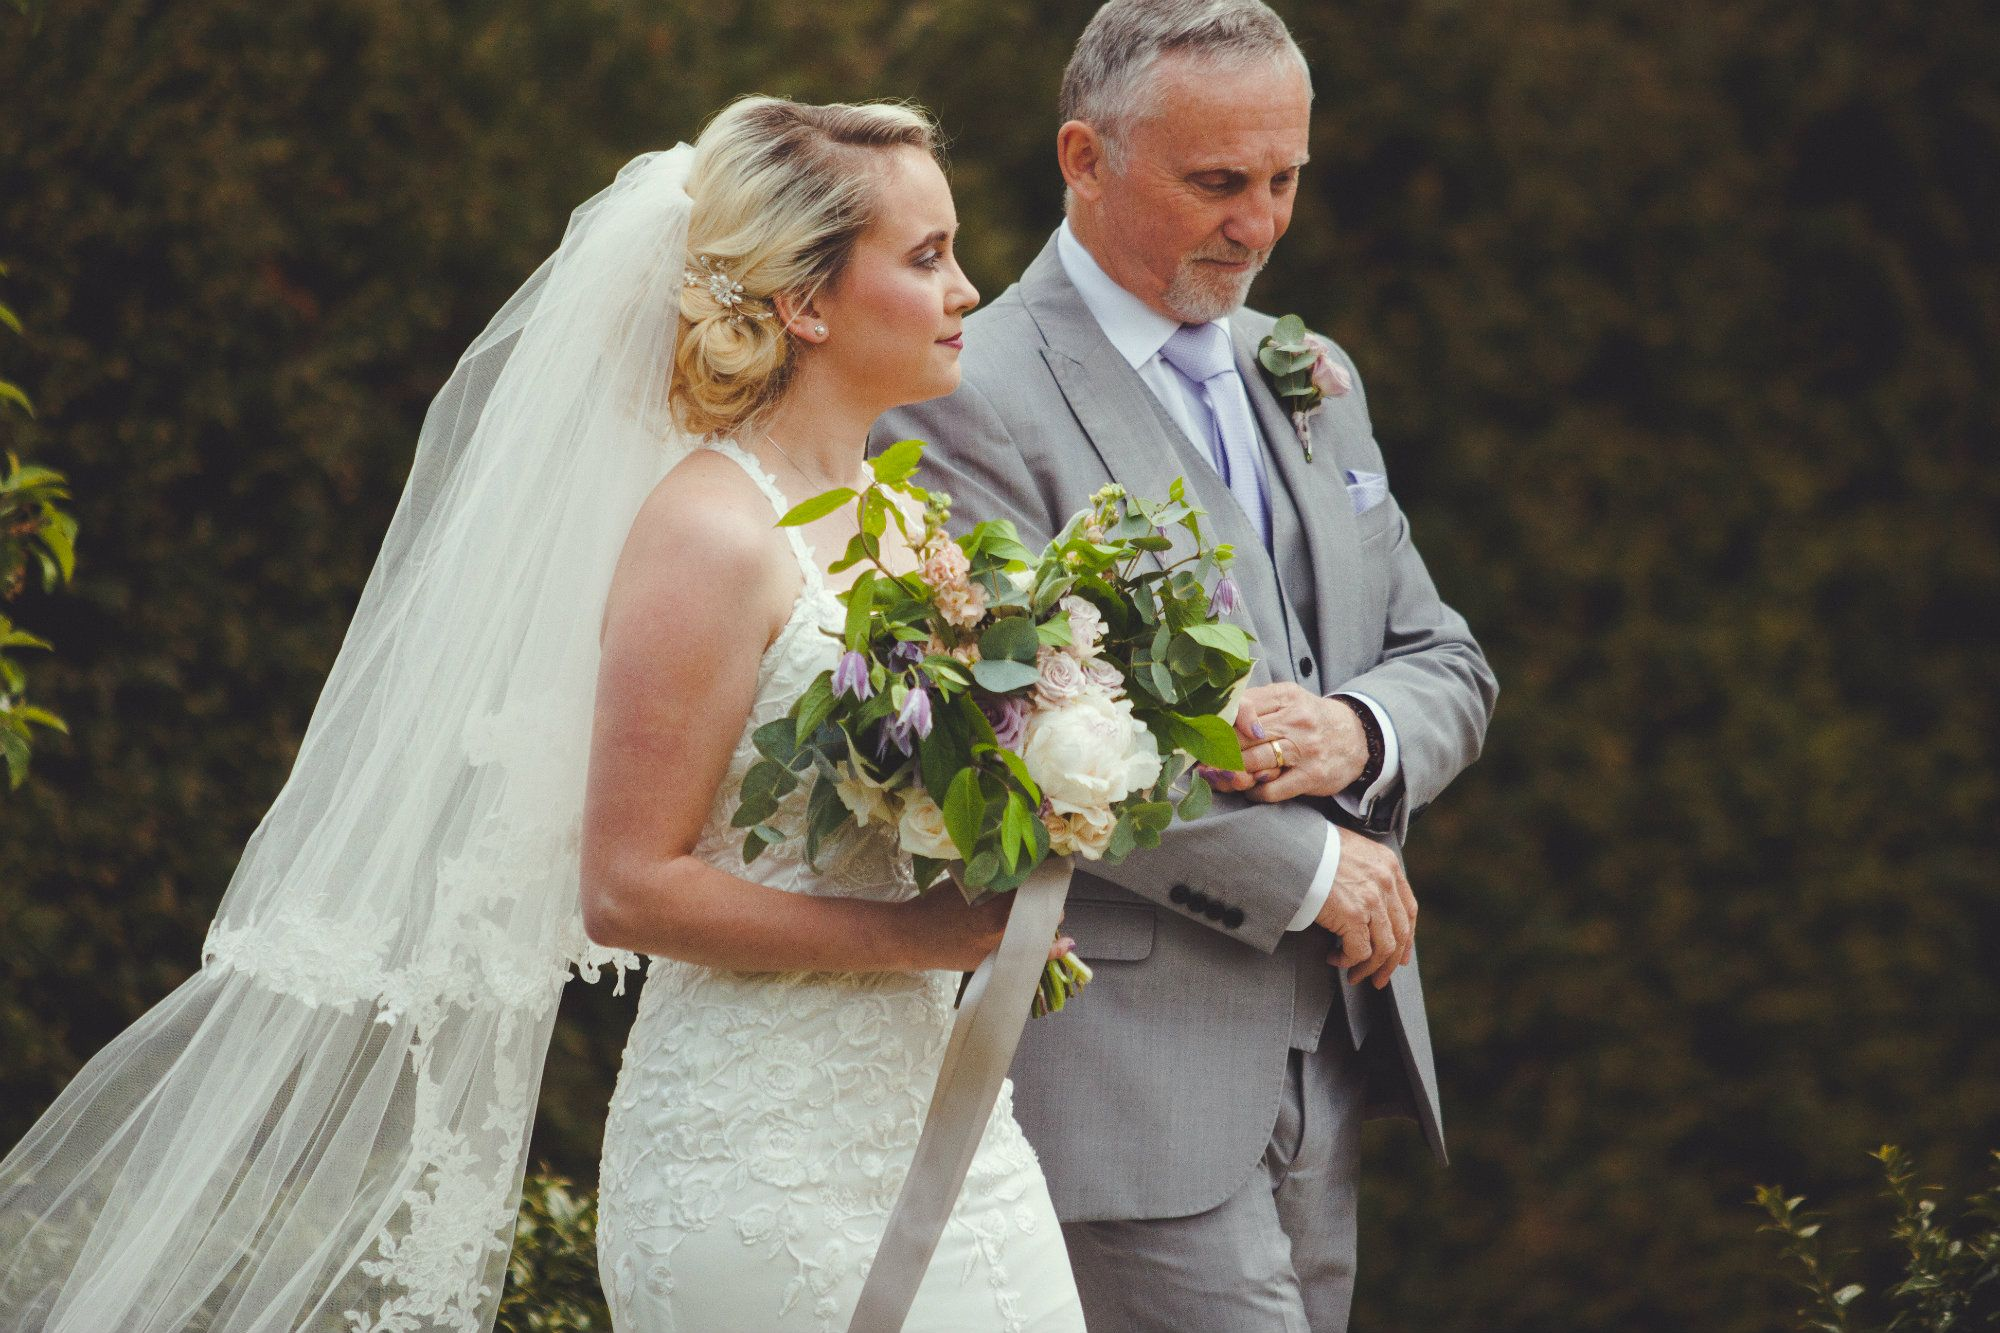 Burford-Oxford-mobile-wedding-hairdresser-Oxfordshire-UK-JEN-129